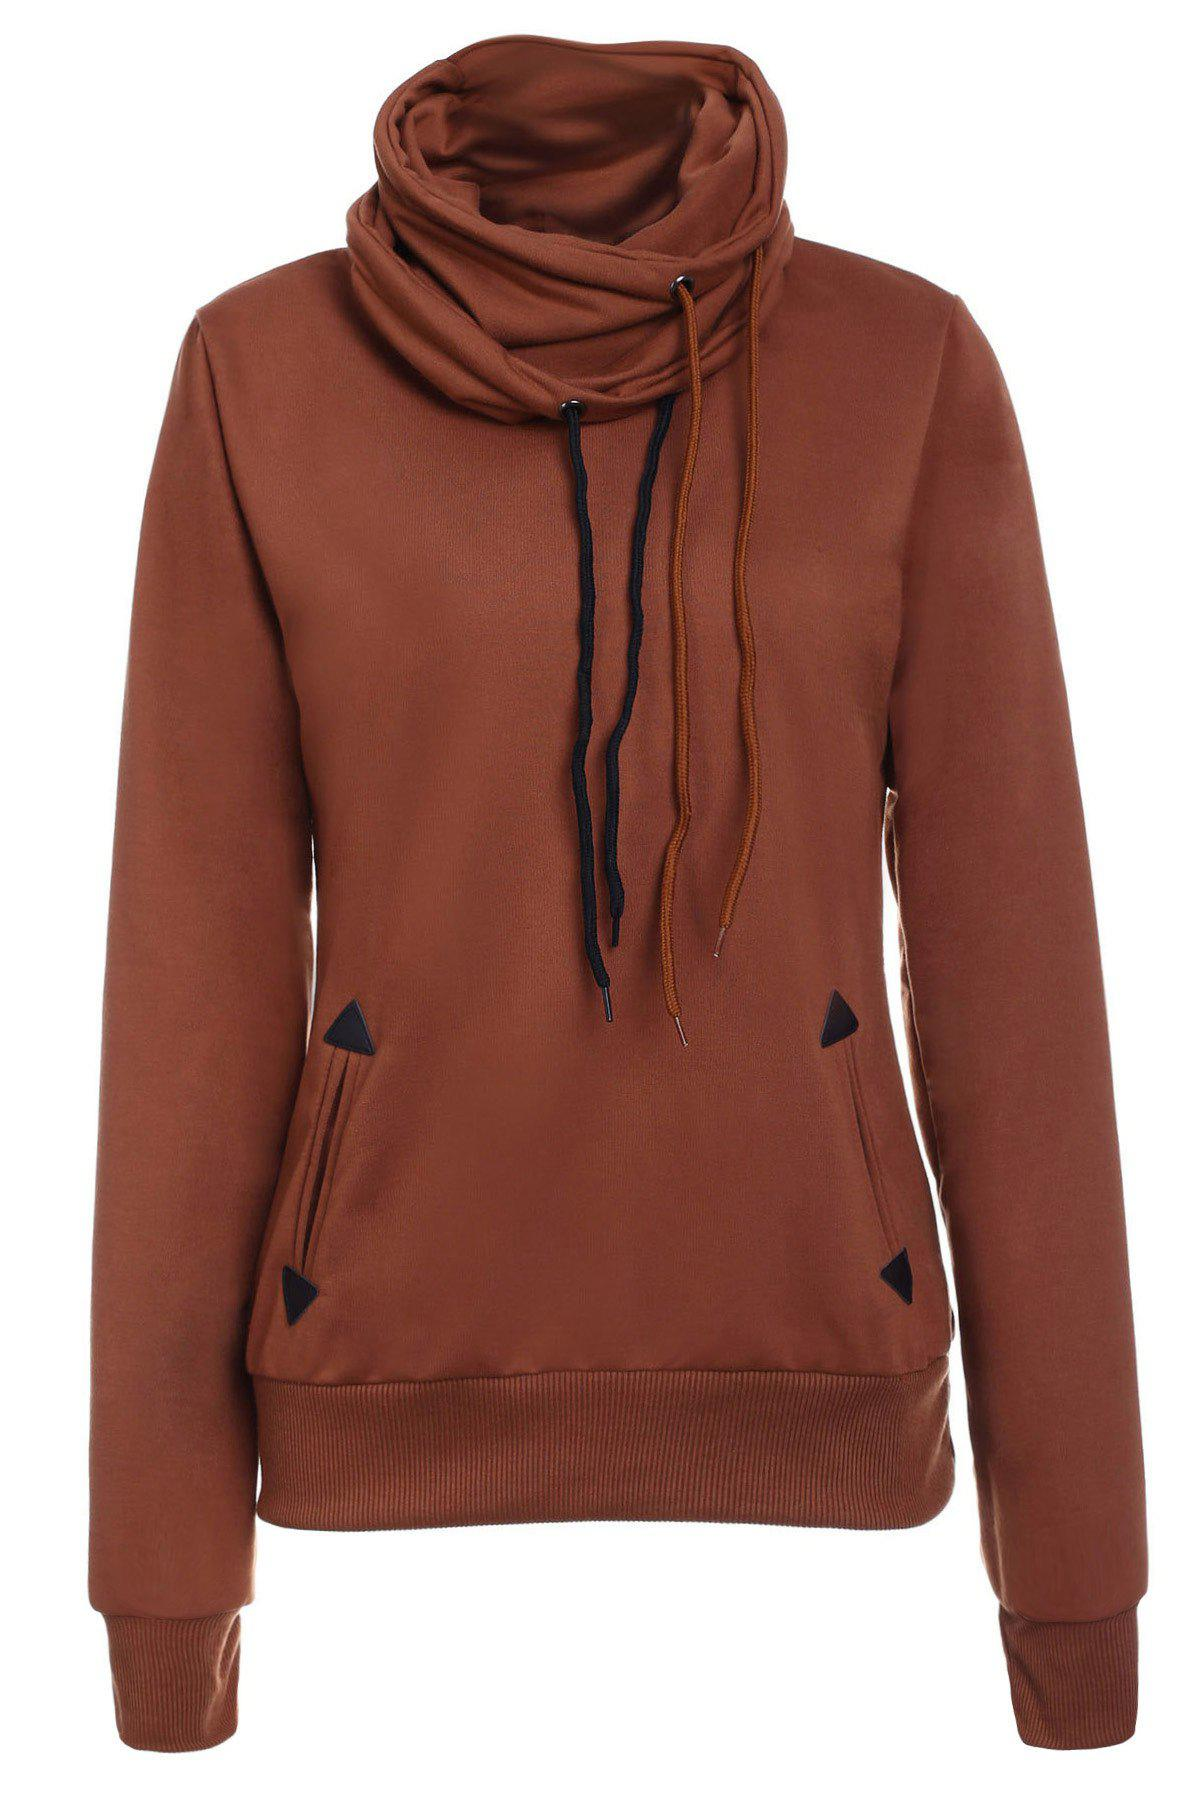 Drawstring Layered Collar Pullover Sweatshirt - BROWN S